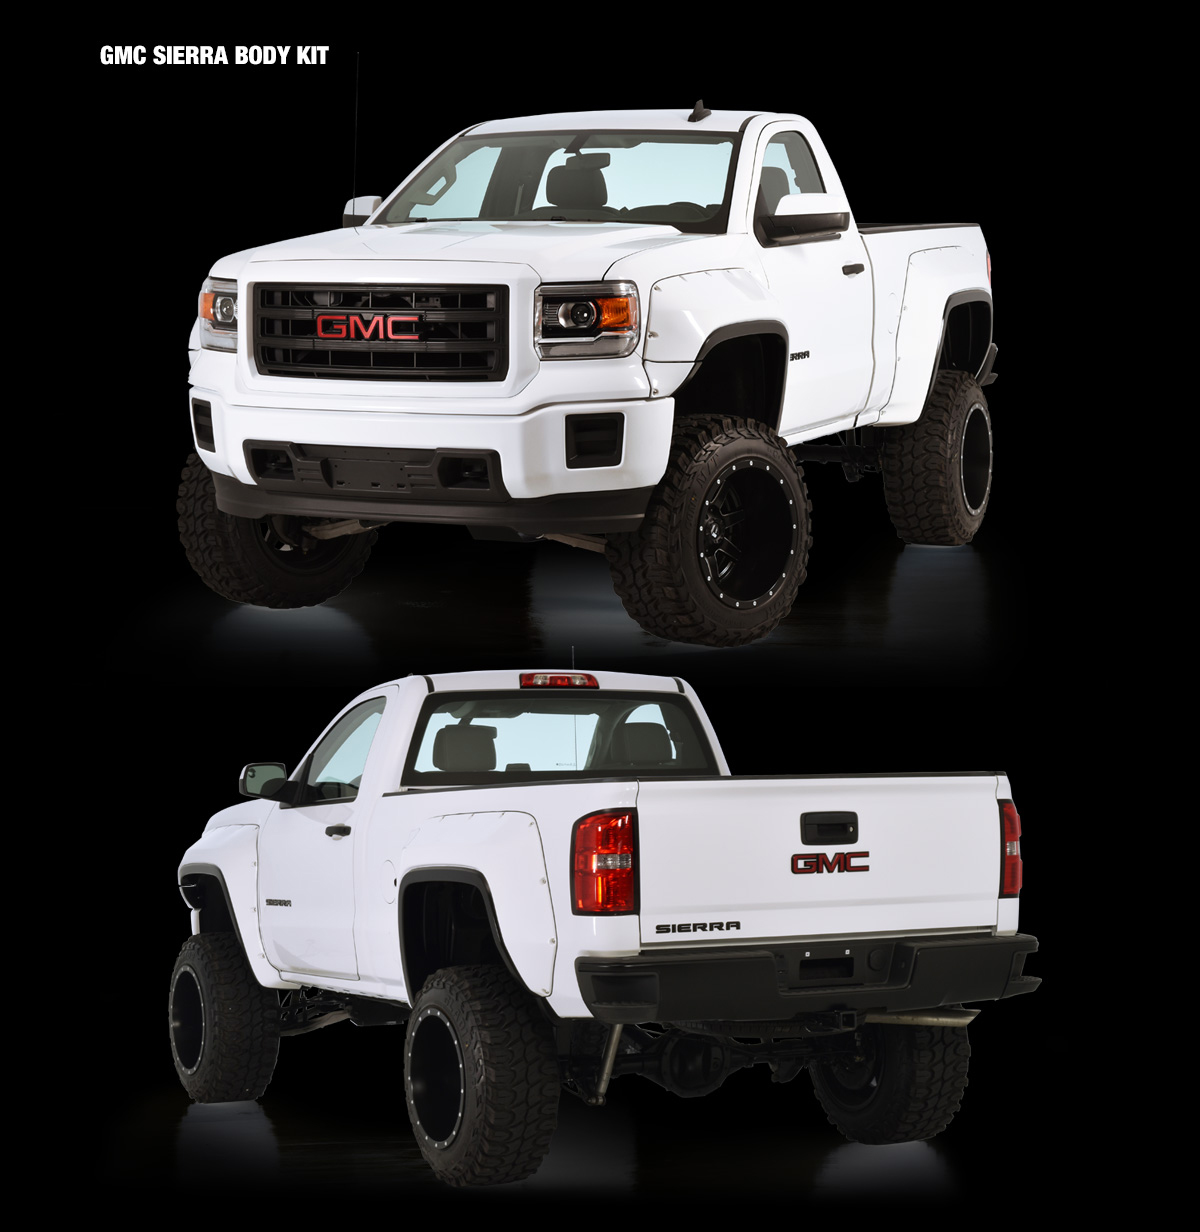 GMC SIERRA BODY KIT